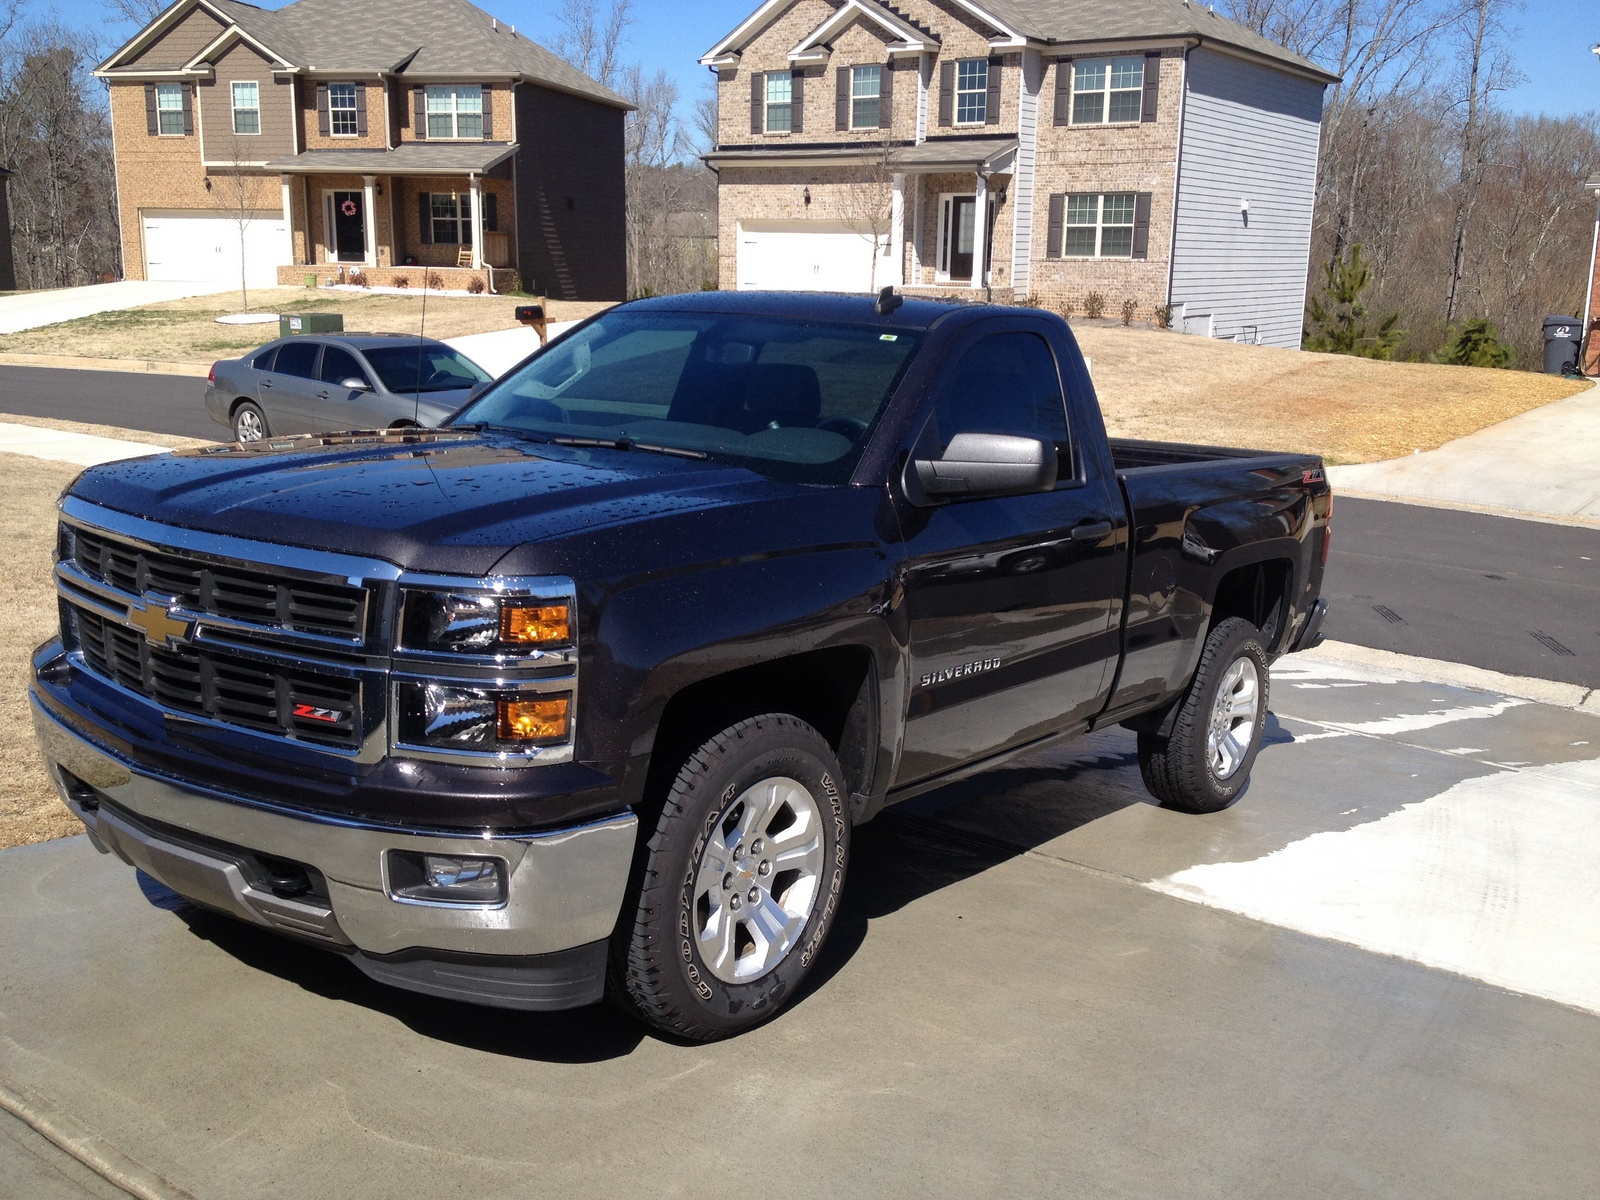 2014 chevrolet silverado 1500 pictures cargurus. Black Bedroom Furniture Sets. Home Design Ideas